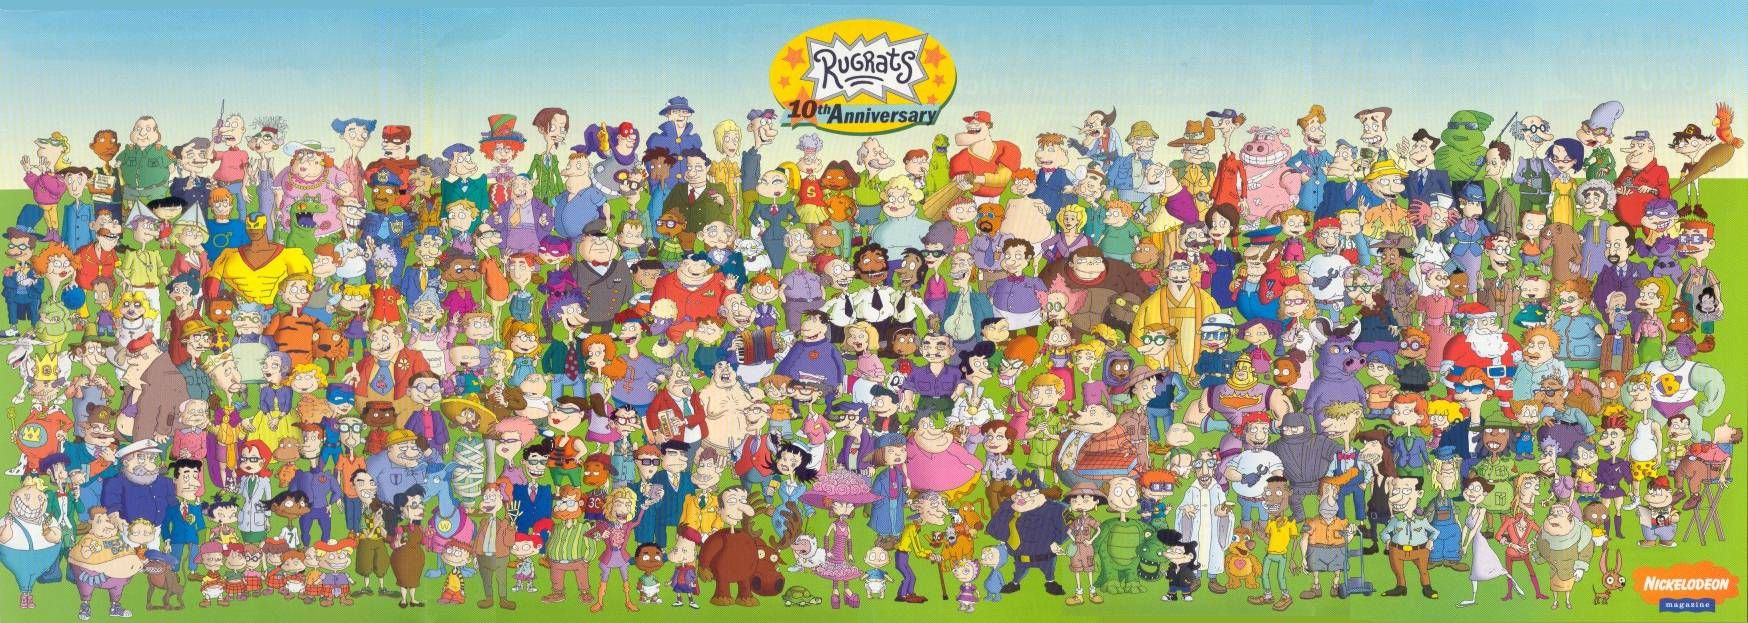 Rugrats (With images) Rugrats characters, Old